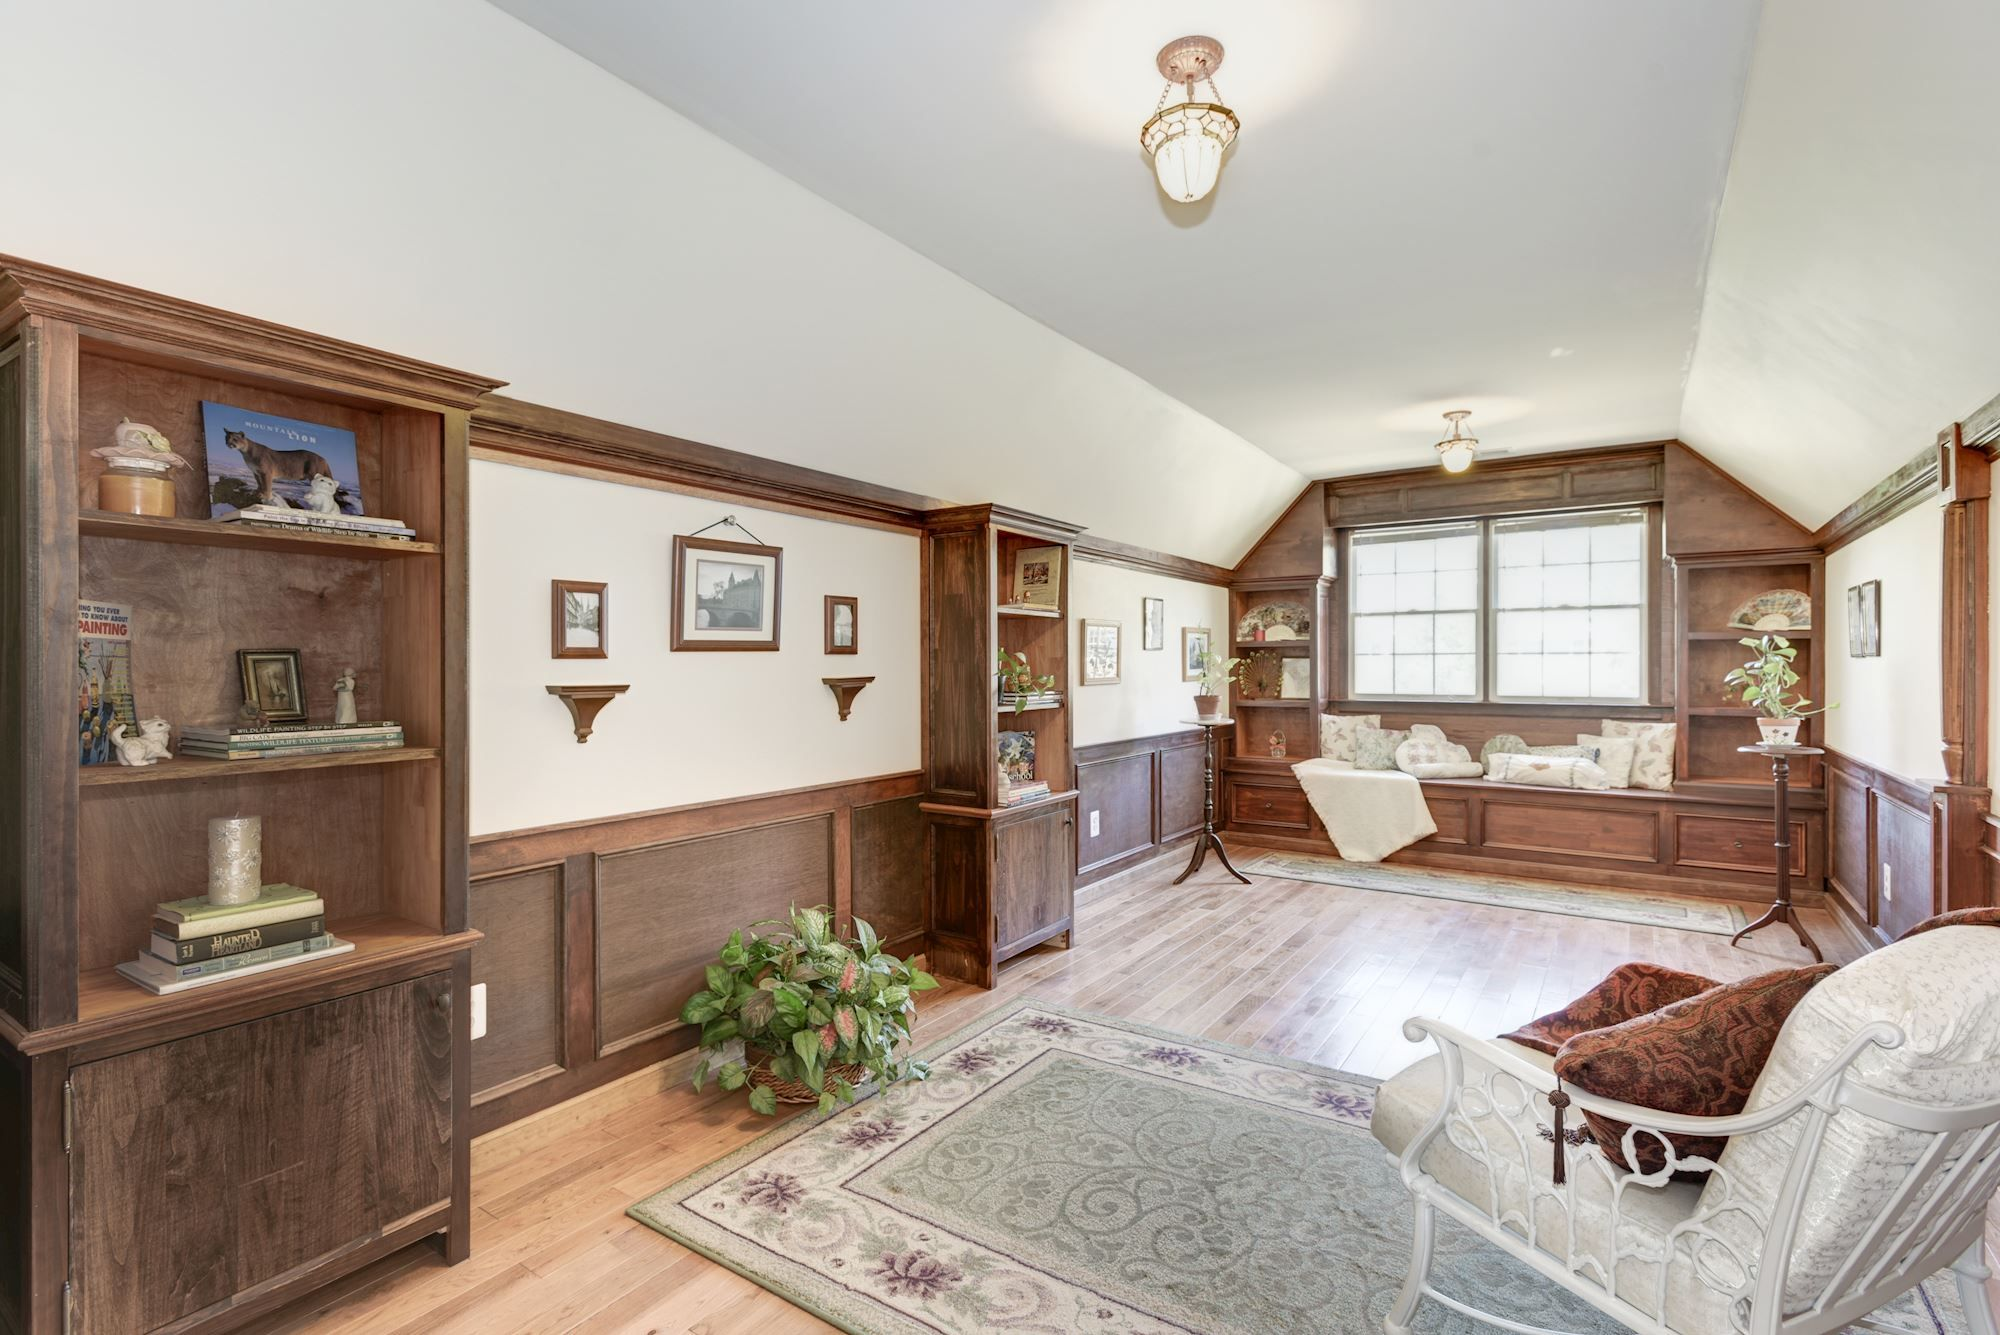 Basements · 5859 TULLOCH SPRING CT, HAYMARKET, VA 20169. 4 Bedrooms, 2 Full  Baths